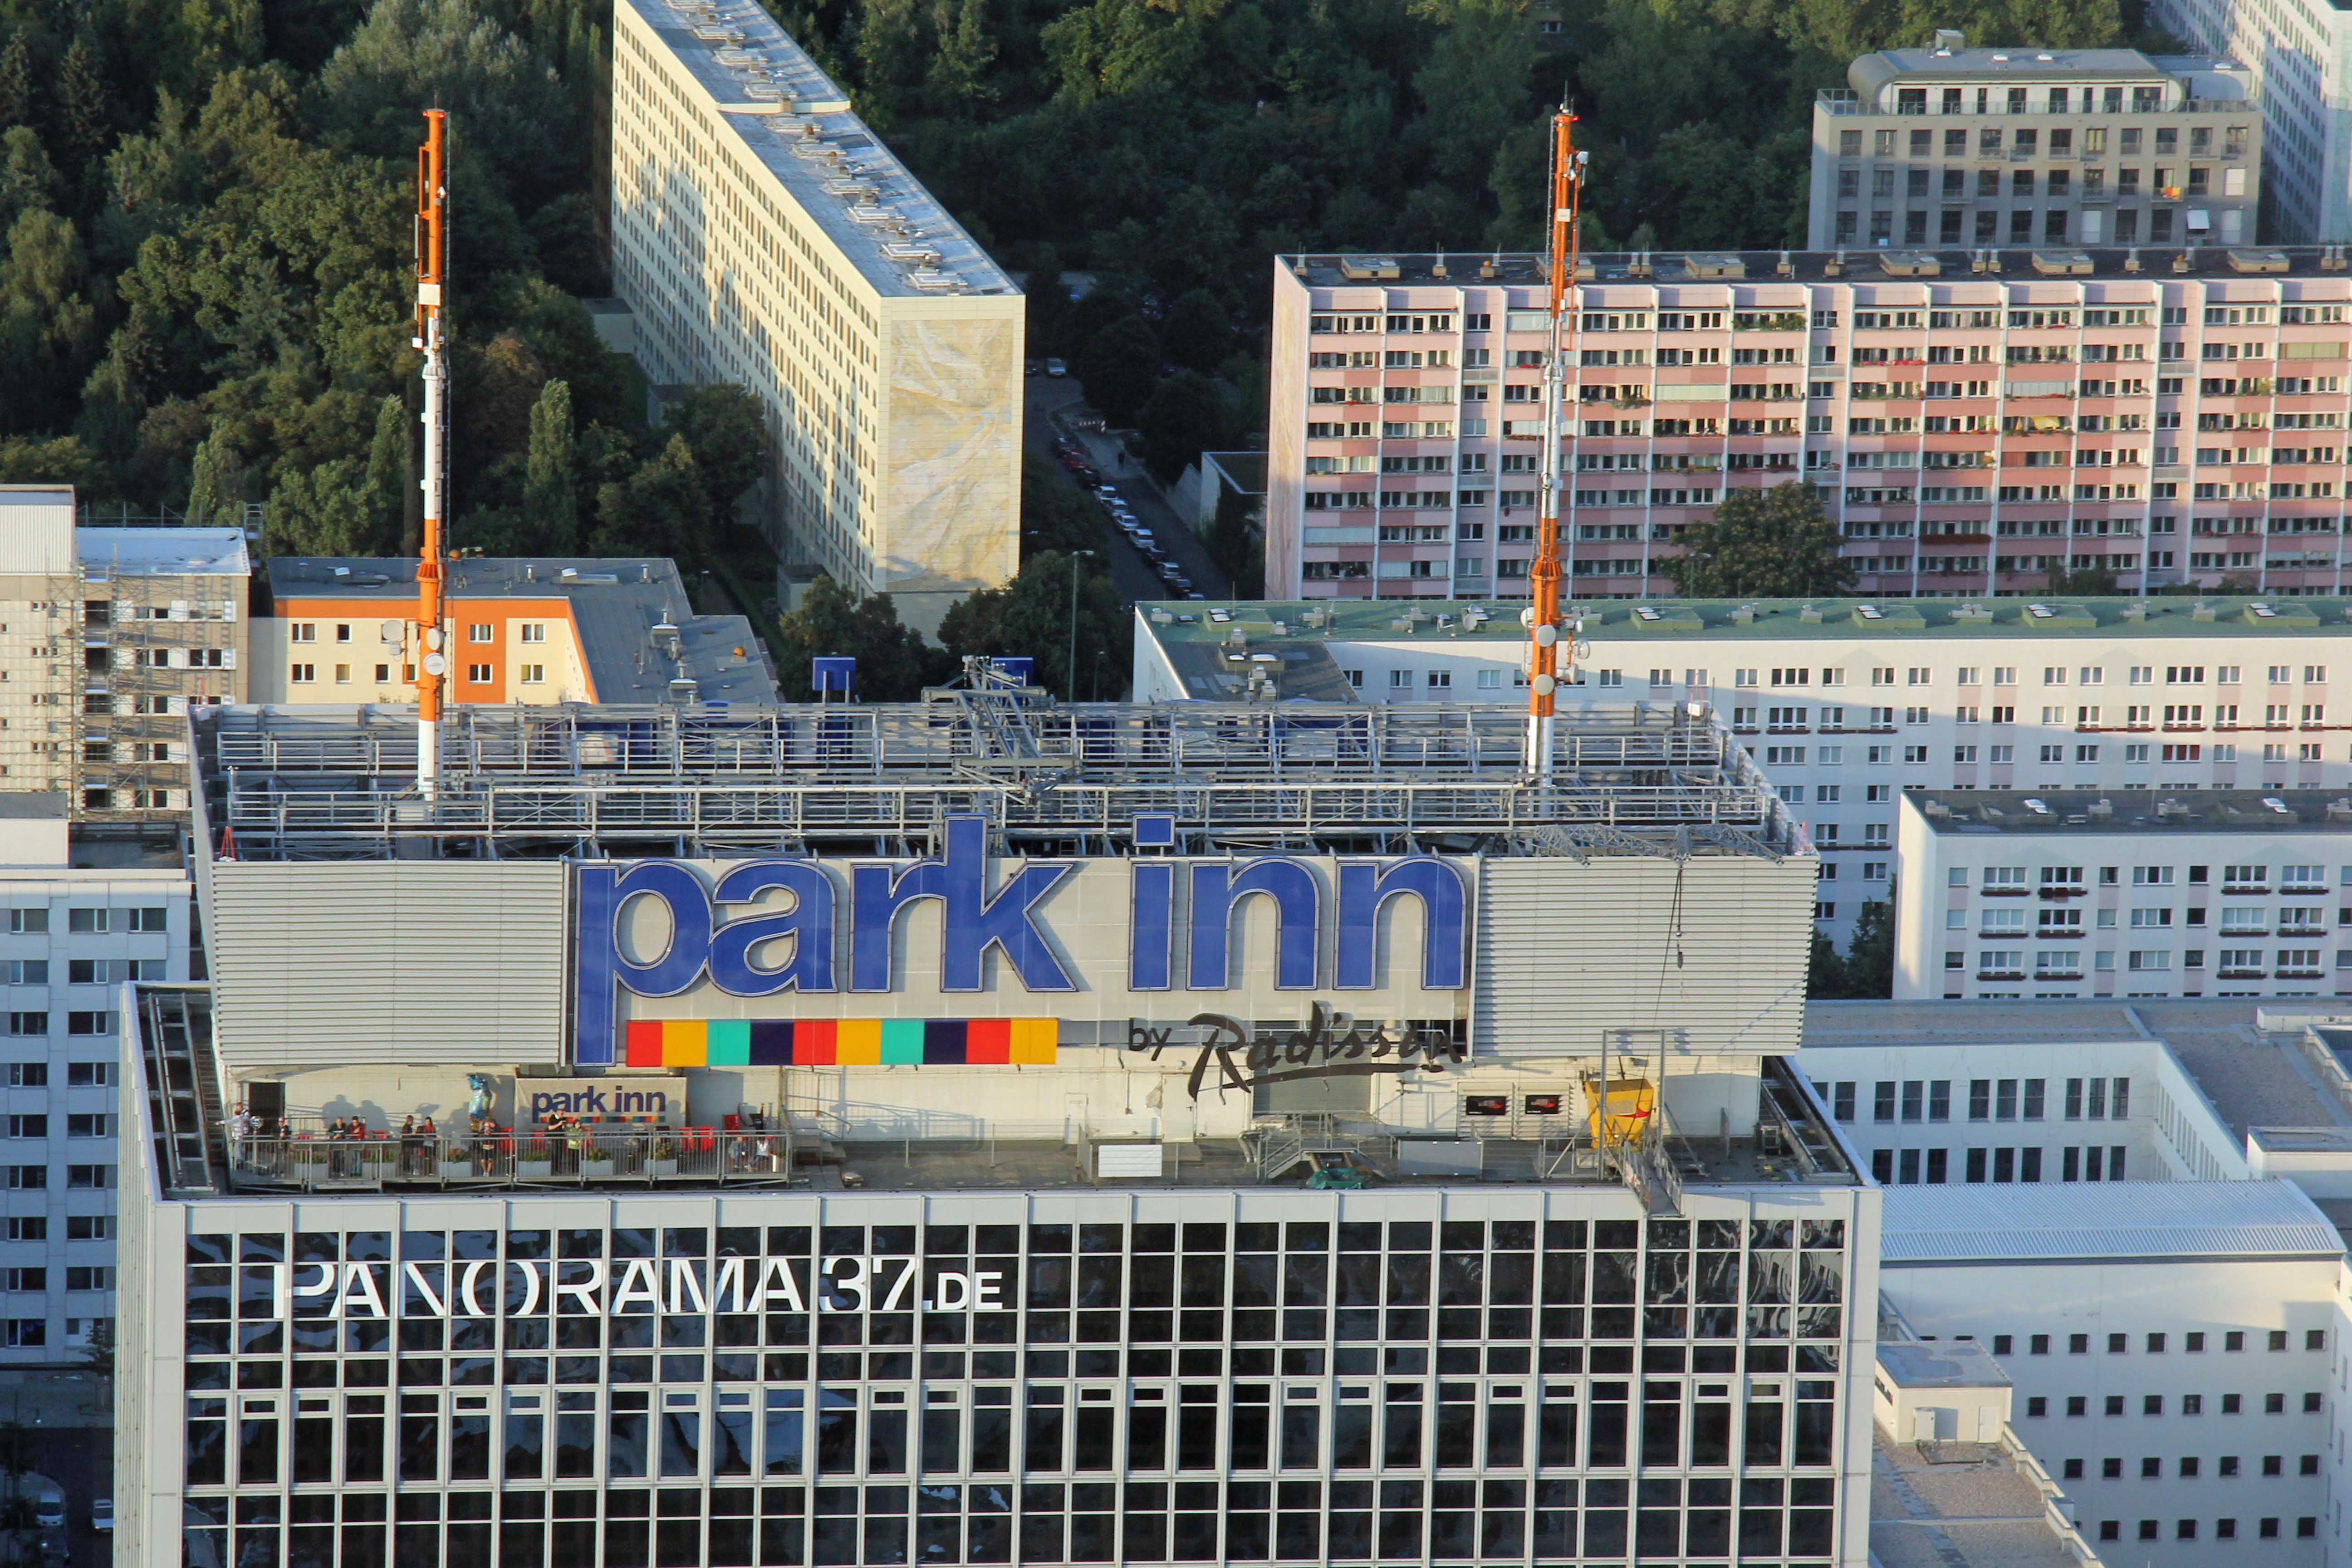 The Park Inn Sun Deck (Dachterasse) in Berlin from the Fernehturm (TV Tower) at Alexanderplatz